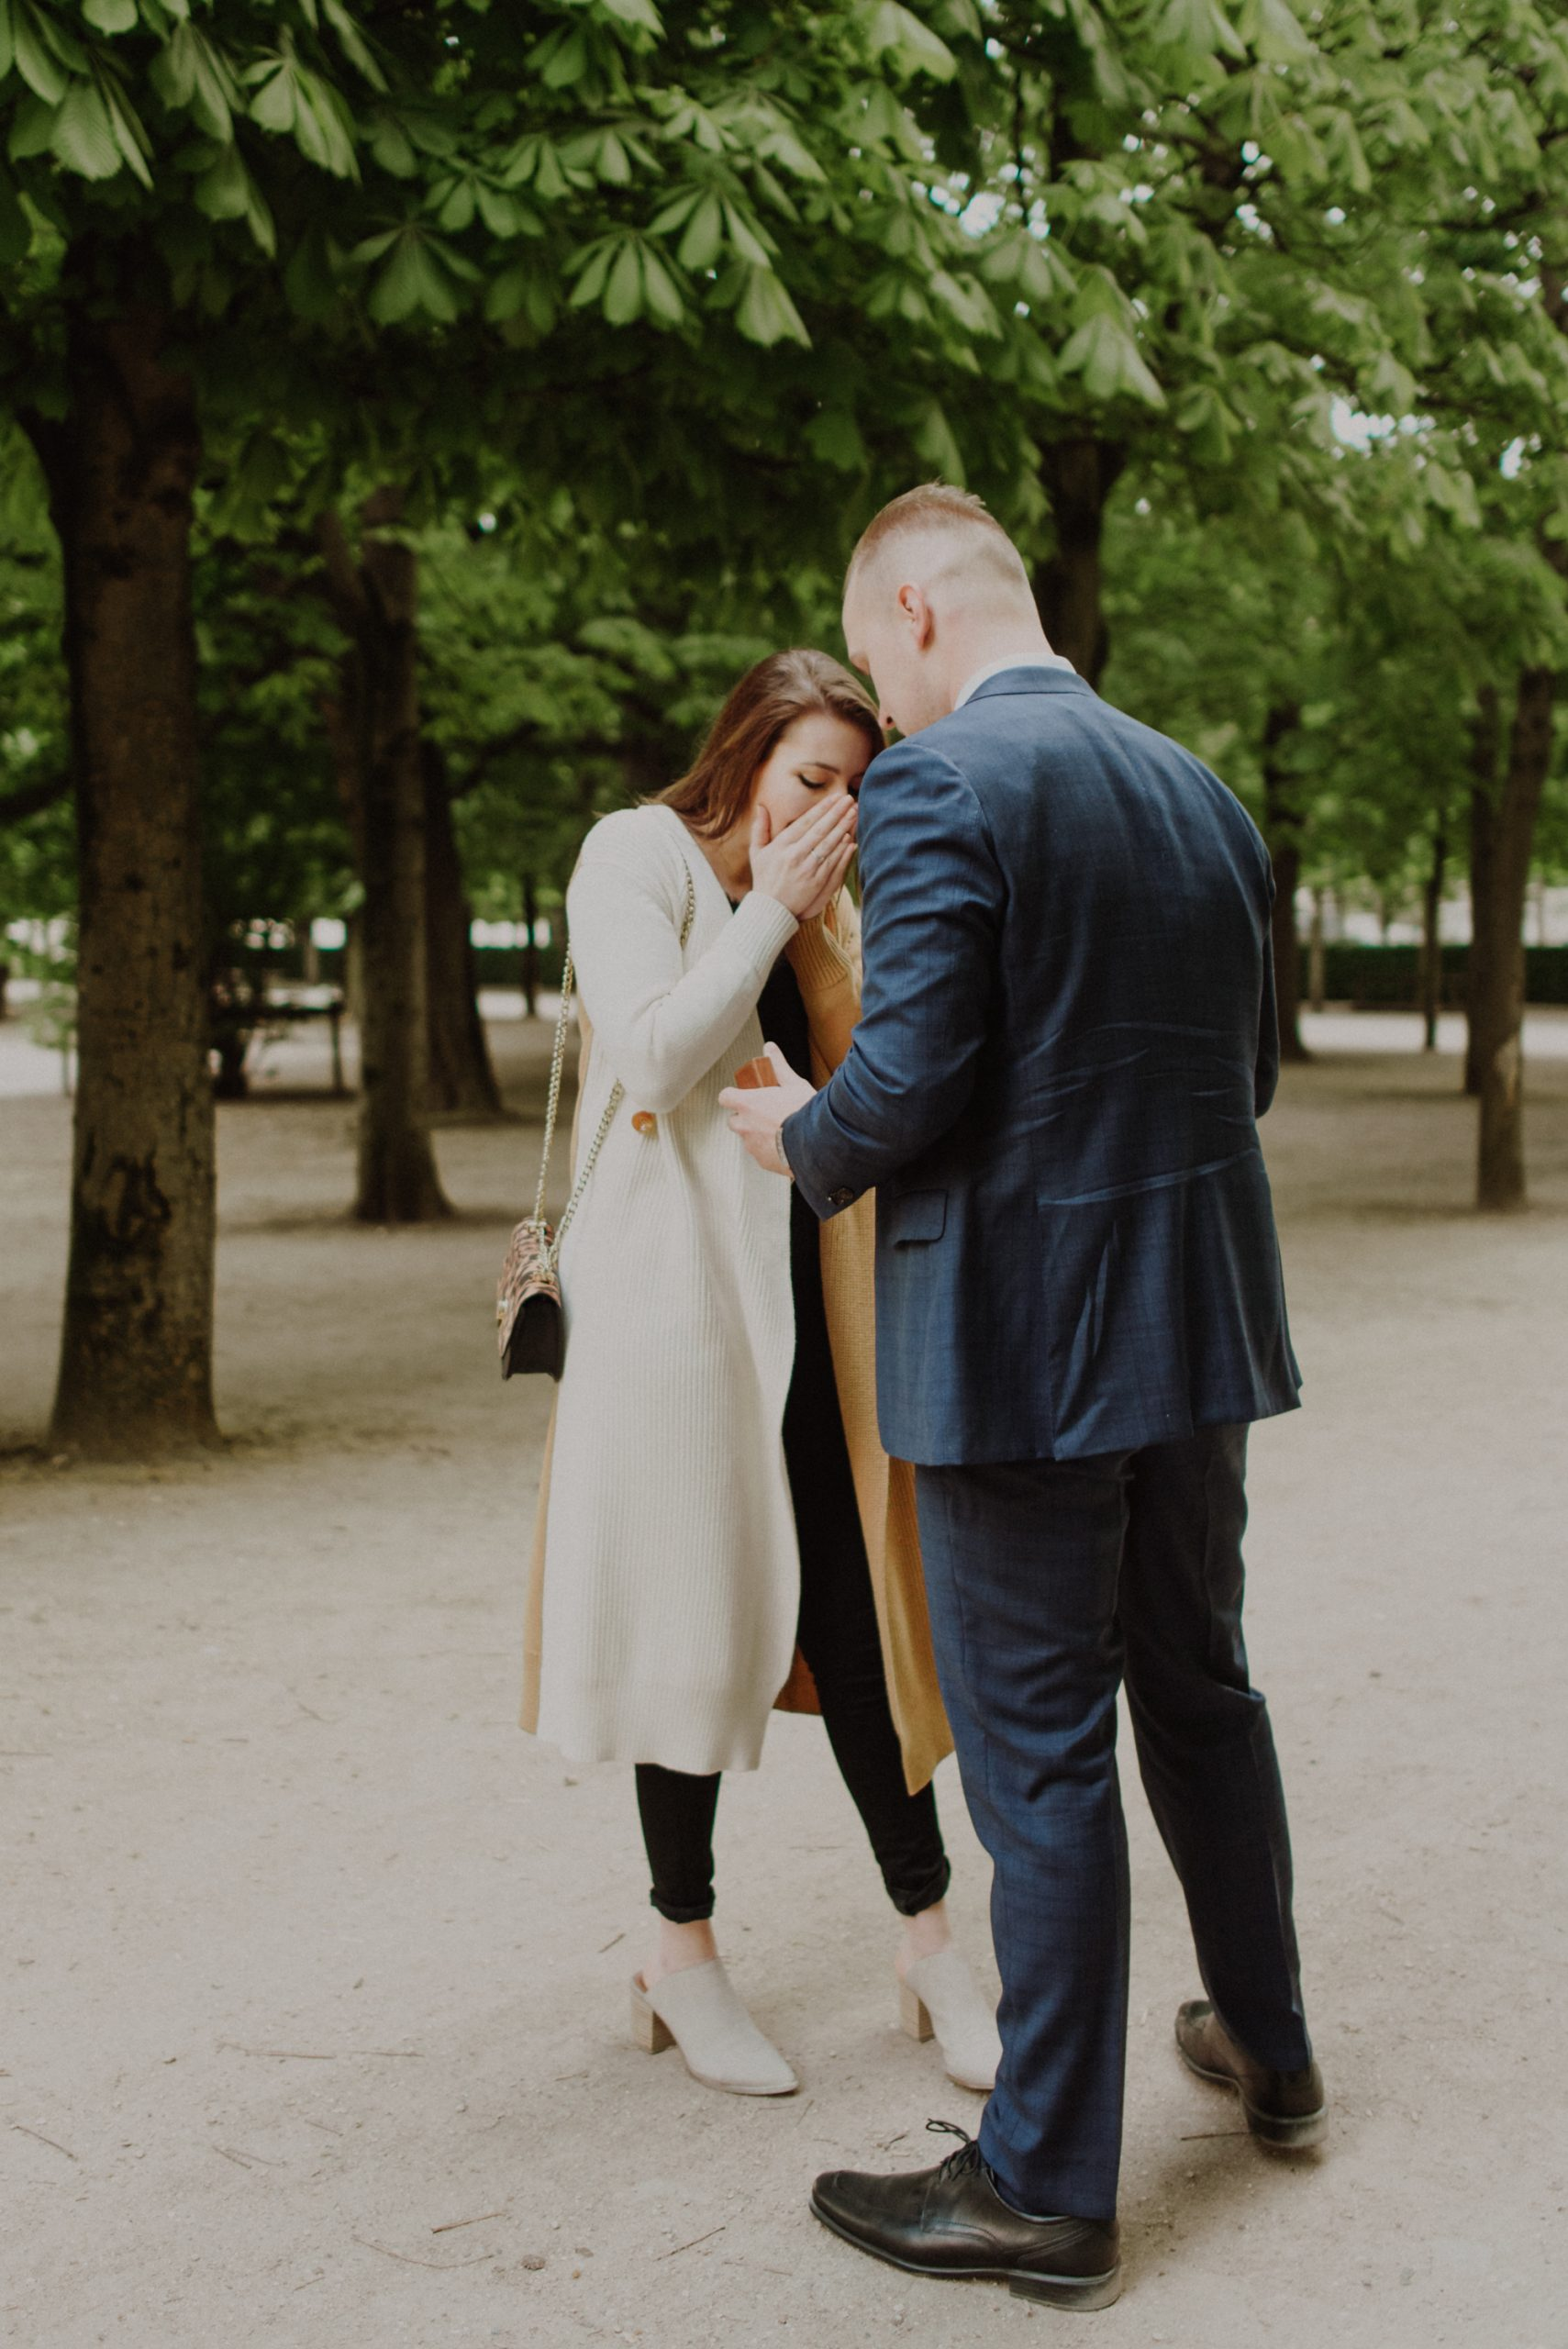 proposal in front of the louvre museum in paris france inside the tuileries garden in spring